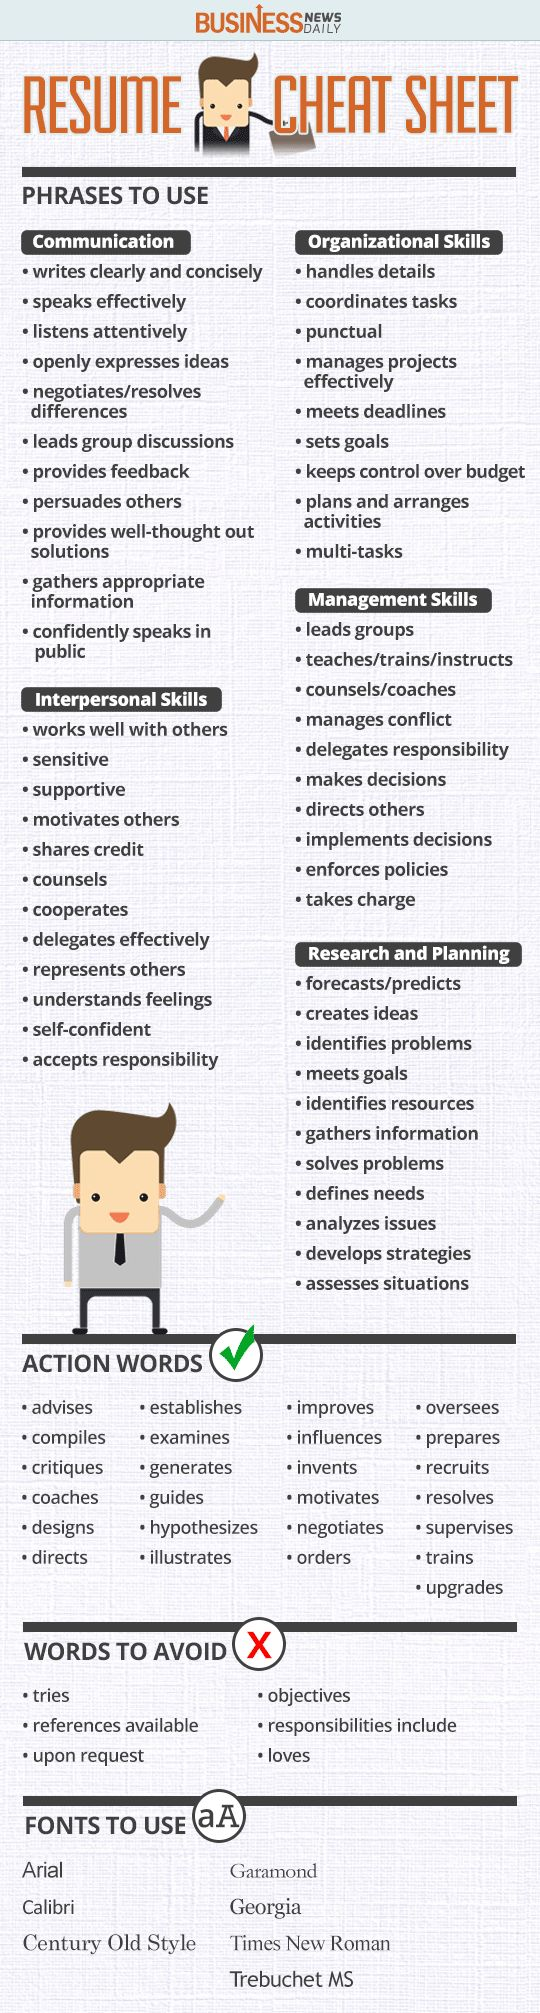 Opposenewapstandardsus  Ravishing  Ideas About Resume On Pinterest  Cv Format Resume Cv And  With Gorgeous Resume Cheat Sheet Infographic Andrews Almost Done With A Complete Unit On Employment Which With Attractive How To Make A Resume For Job Application Also Hadoop Resume In Addition Waitress Job Description Resume And Human Resources Generalist Resume As Well As Pharmacy Technician Resume Sample Additionally Resume Template For Google Docs From Pinterestcom With Opposenewapstandardsus  Gorgeous  Ideas About Resume On Pinterest  Cv Format Resume Cv And  With Attractive Resume Cheat Sheet Infographic Andrews Almost Done With A Complete Unit On Employment Which And Ravishing How To Make A Resume For Job Application Also Hadoop Resume In Addition Waitress Job Description Resume From Pinterestcom